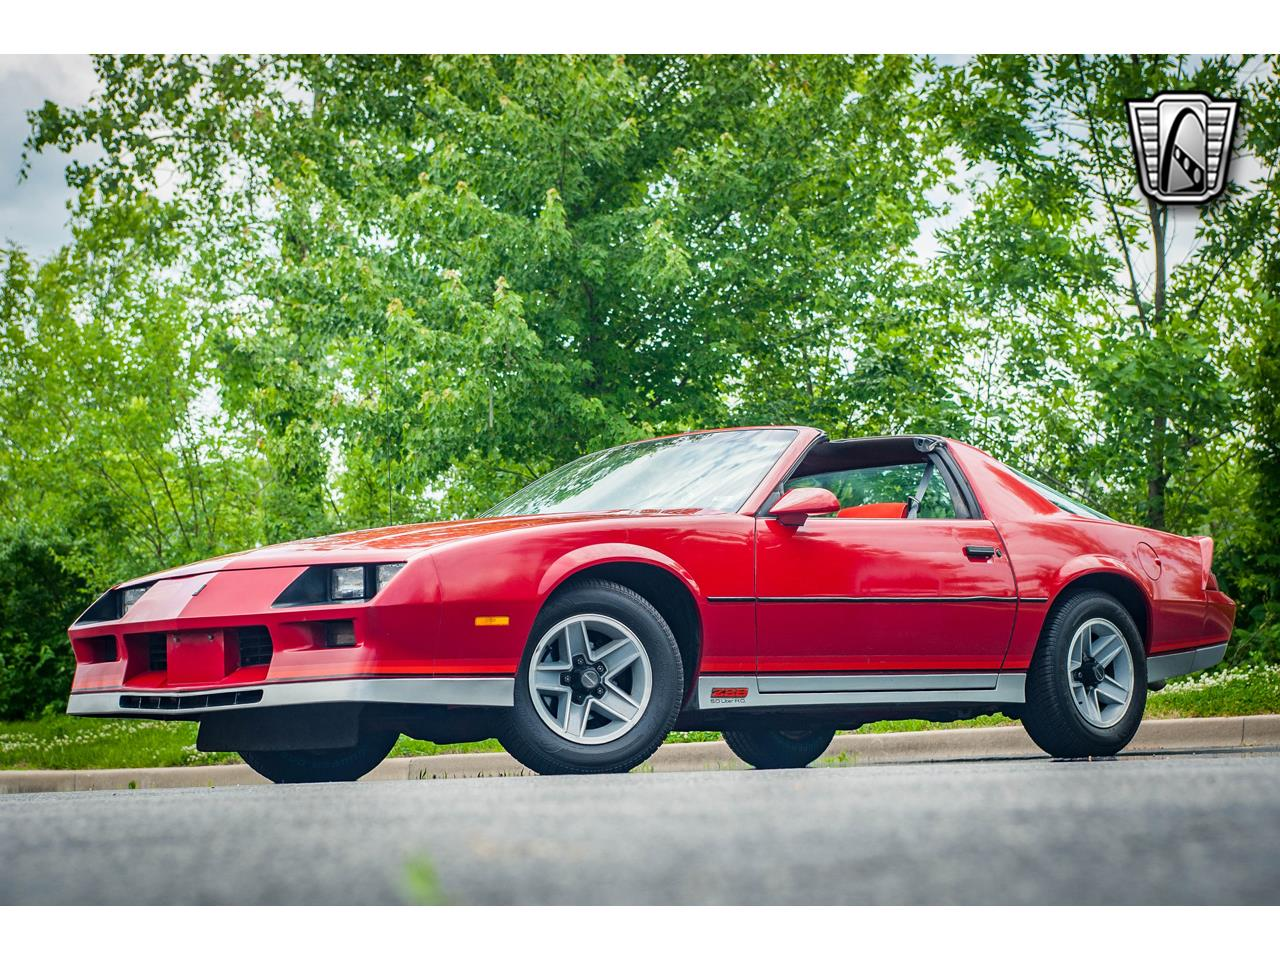 Large Picture of '84 Chevrolet Camaro located in Illinois - QB9Y